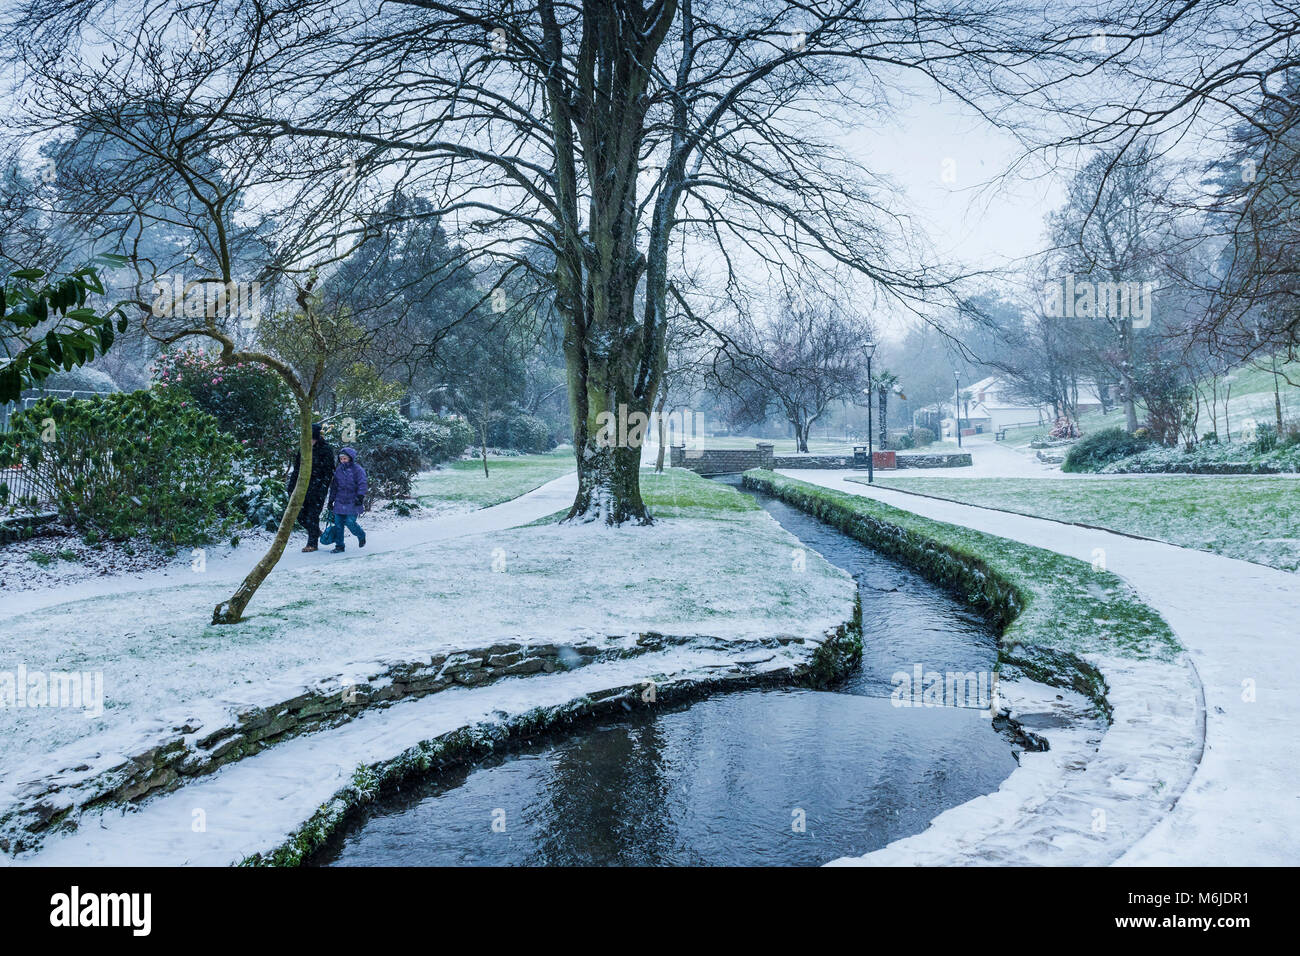 A winter snow scene in Trenance Gardens in Newquay Cornwall. - Stock Image